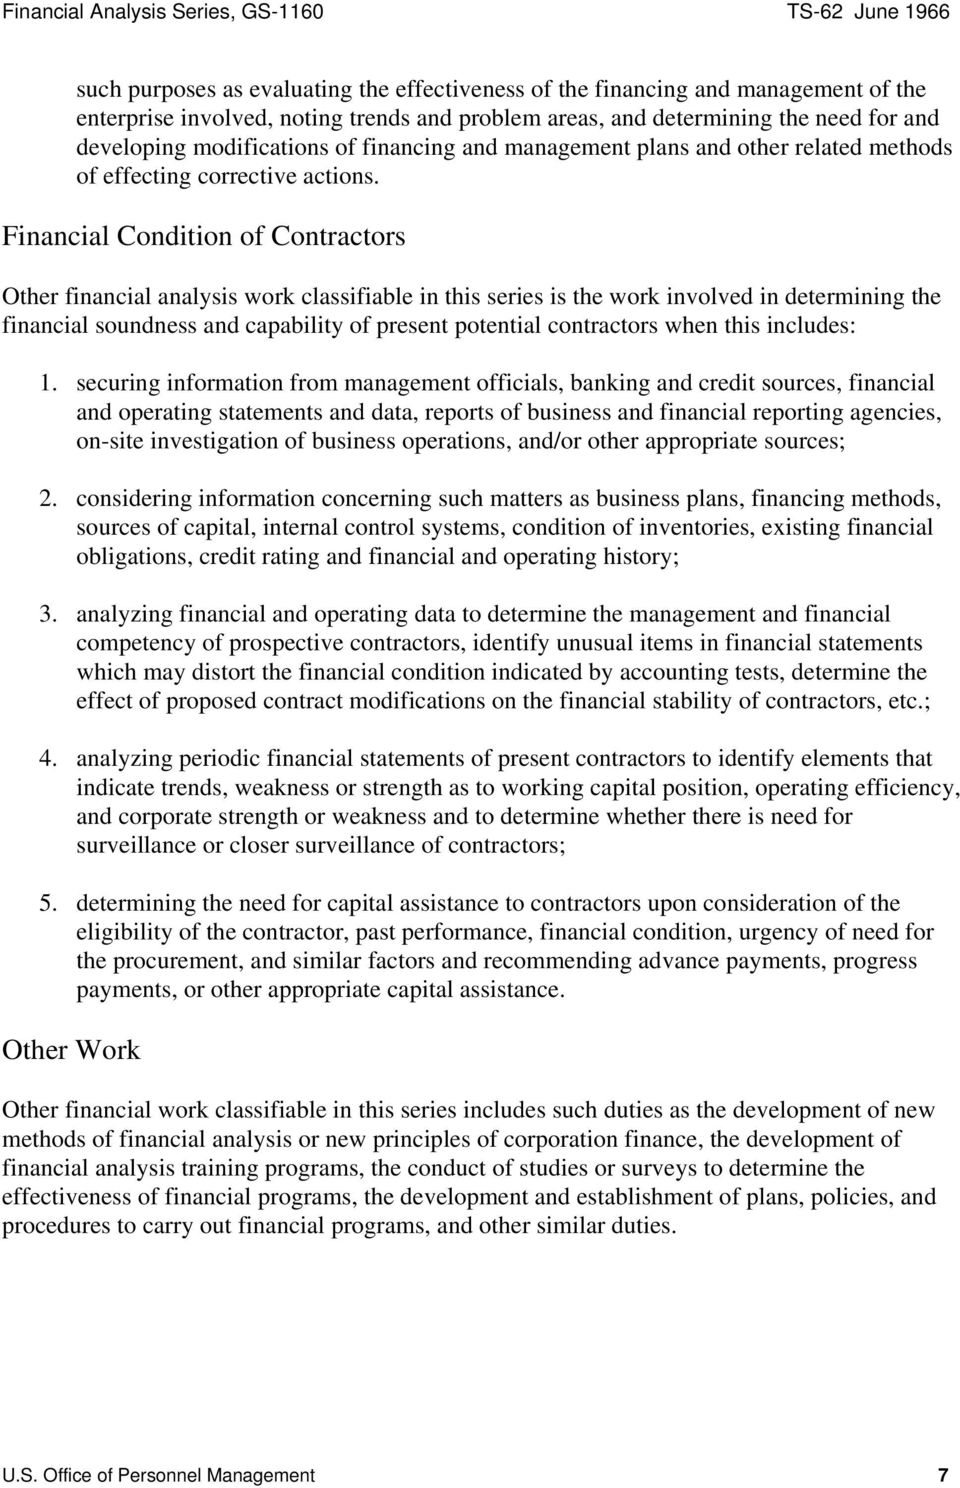 Financial Condition of Contractors Other financial analysis work classifiable in this series is the work involved in determining the financial soundness and capability of present potential